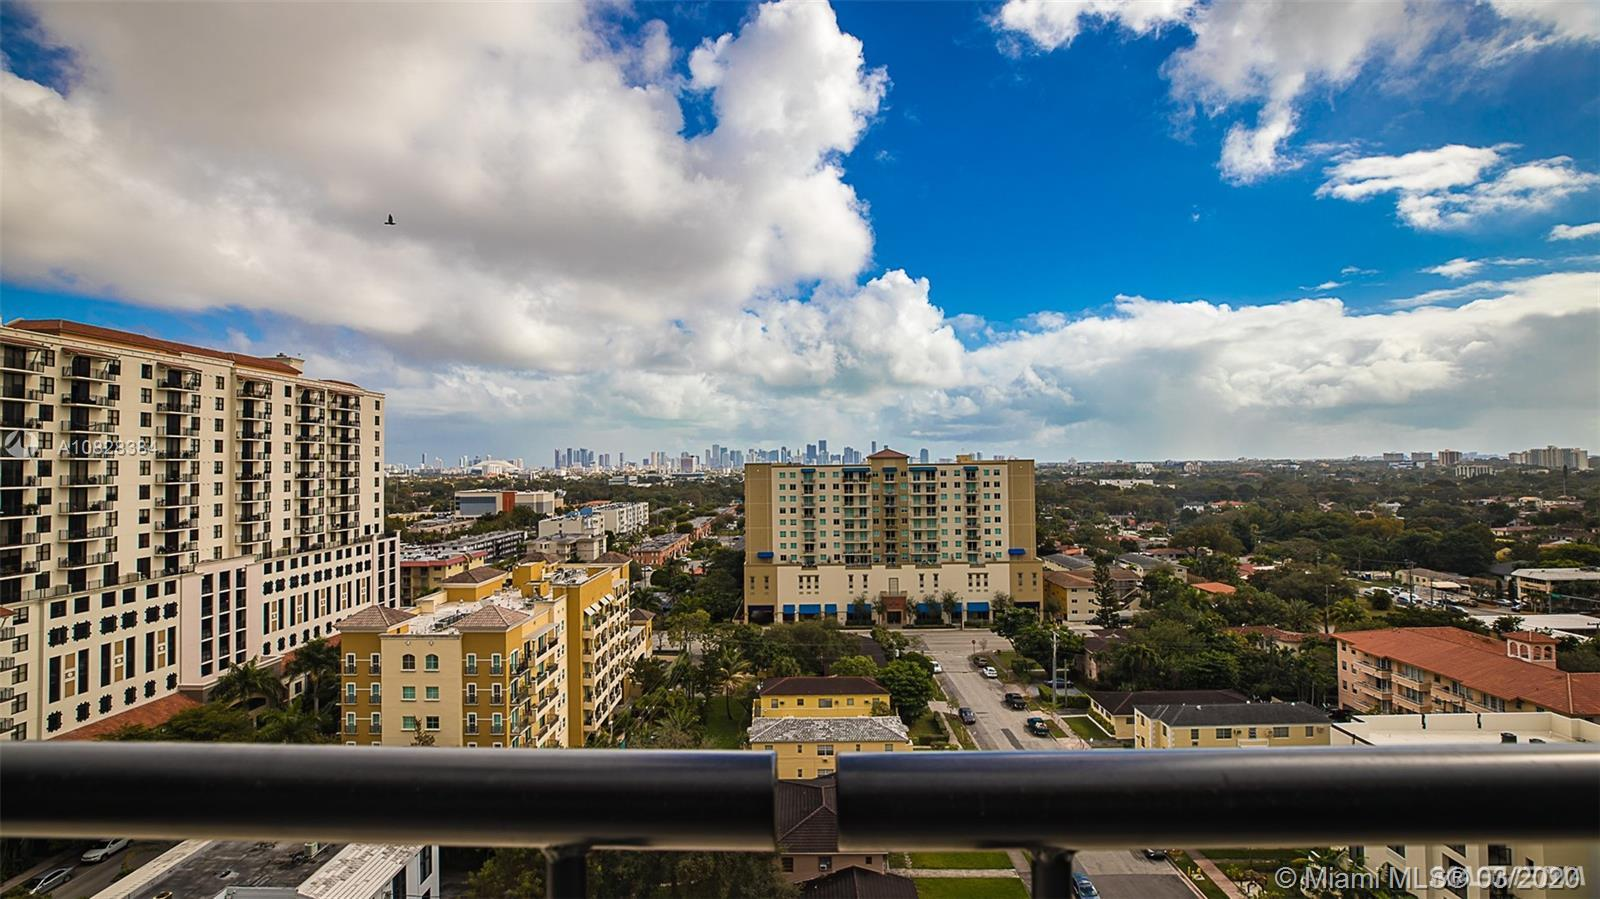 From the moment you walk into this Penthouse apartment you will fall in love with the view!  The uni